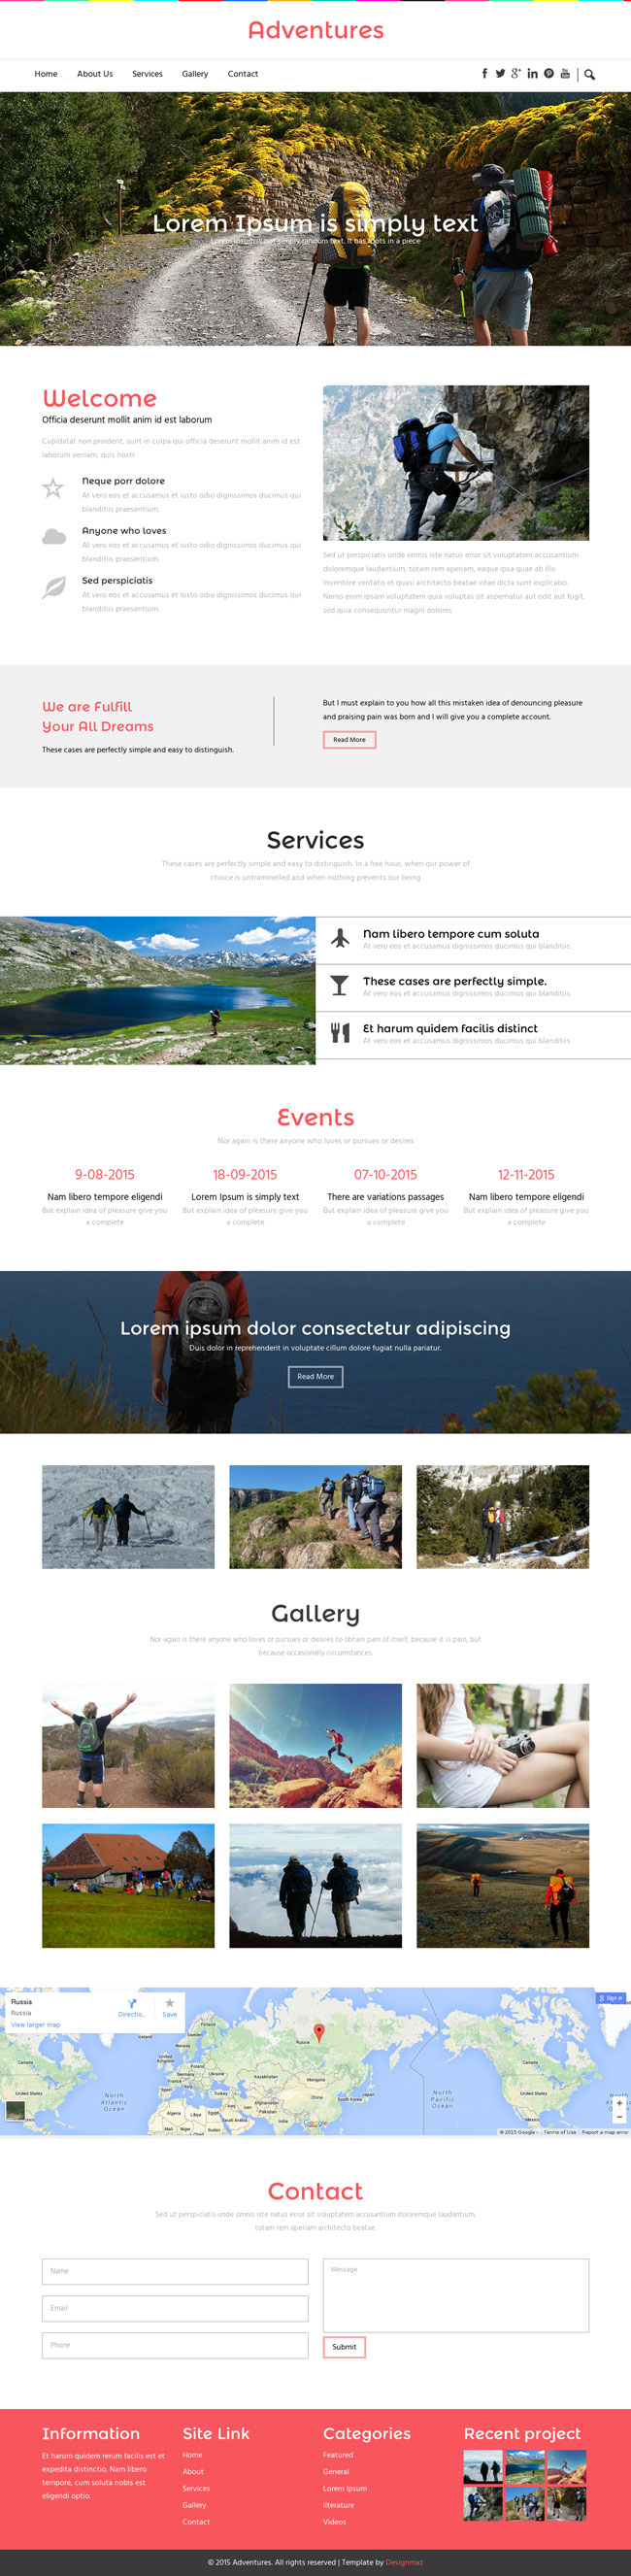 Free-Adventure-Travel-HTML5-CSS3-Template-Preview